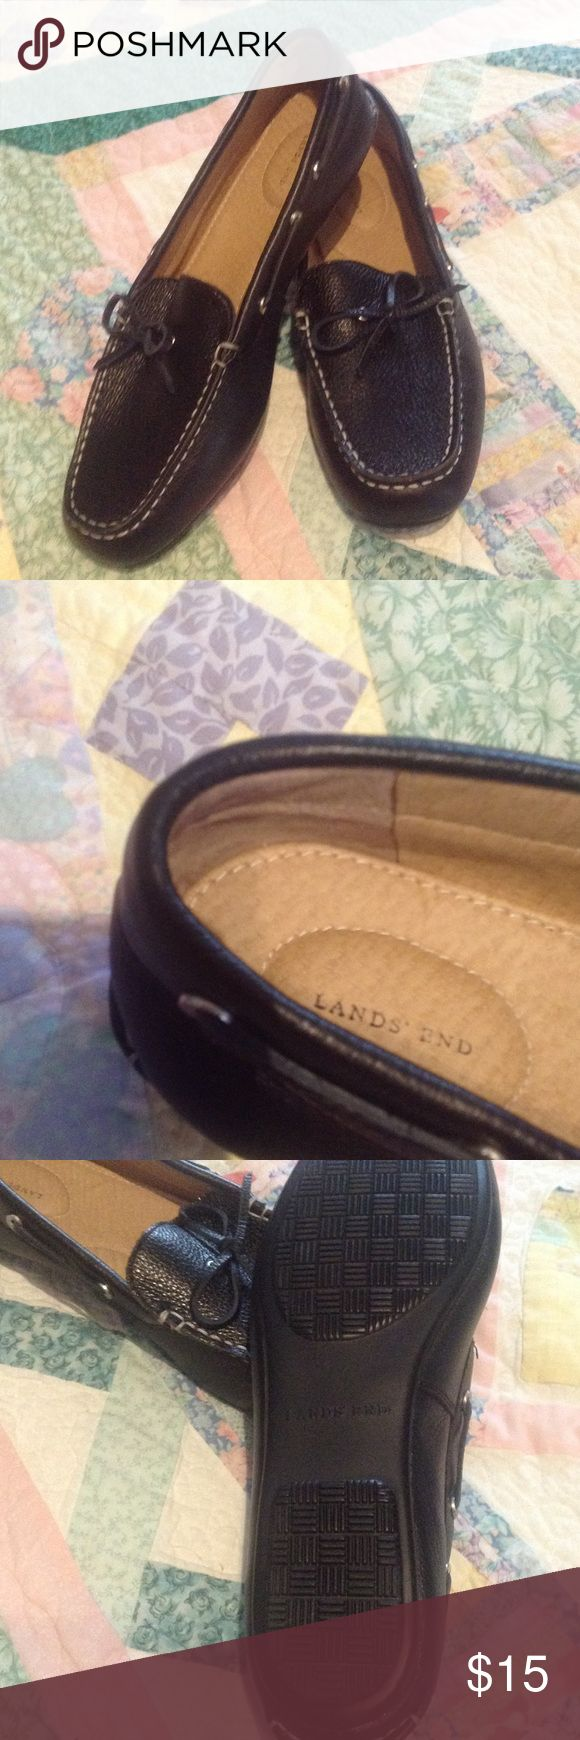 Re-posting NWOT women's driving loafers, 11D These are great looking shoes.  They are leather-look moccasin-style loafers.  They are marked 11D; however, they fit more like a narrow. Lands End Shoes Flats & Loafers